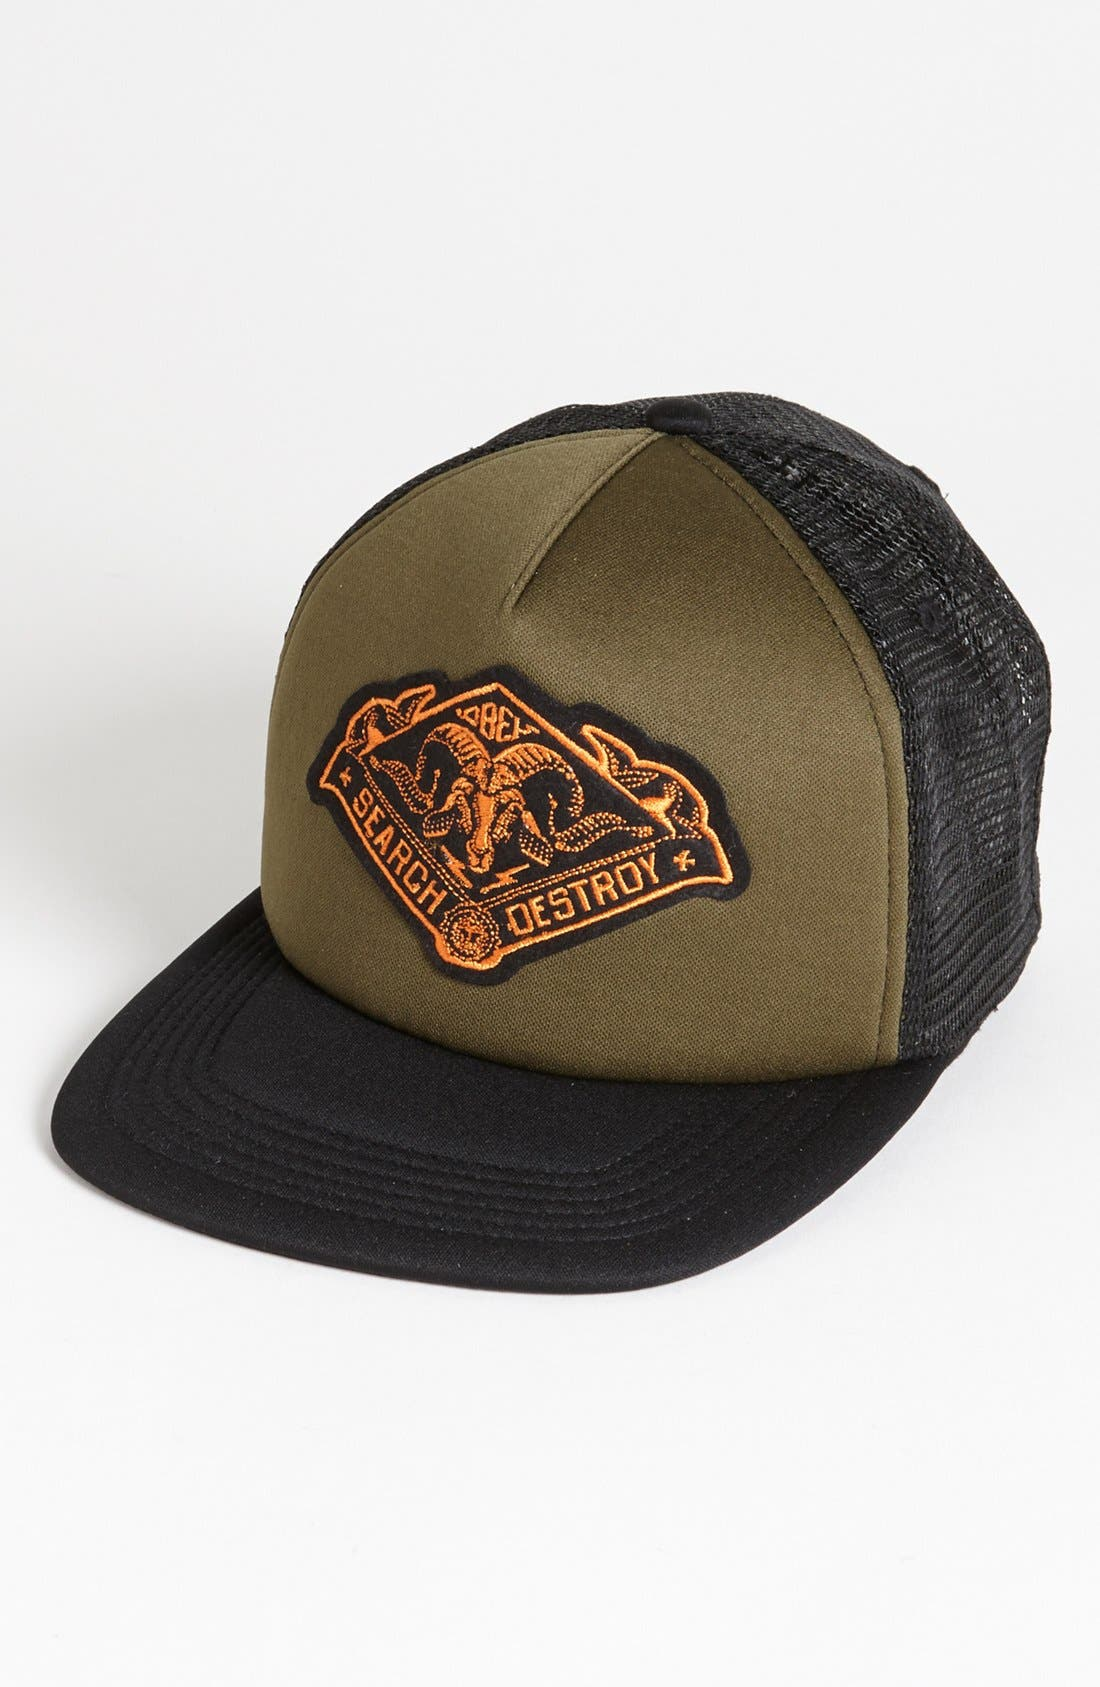 Alternate Image 1 Selected - Obey 'Search & Destroy' Trucker Hat